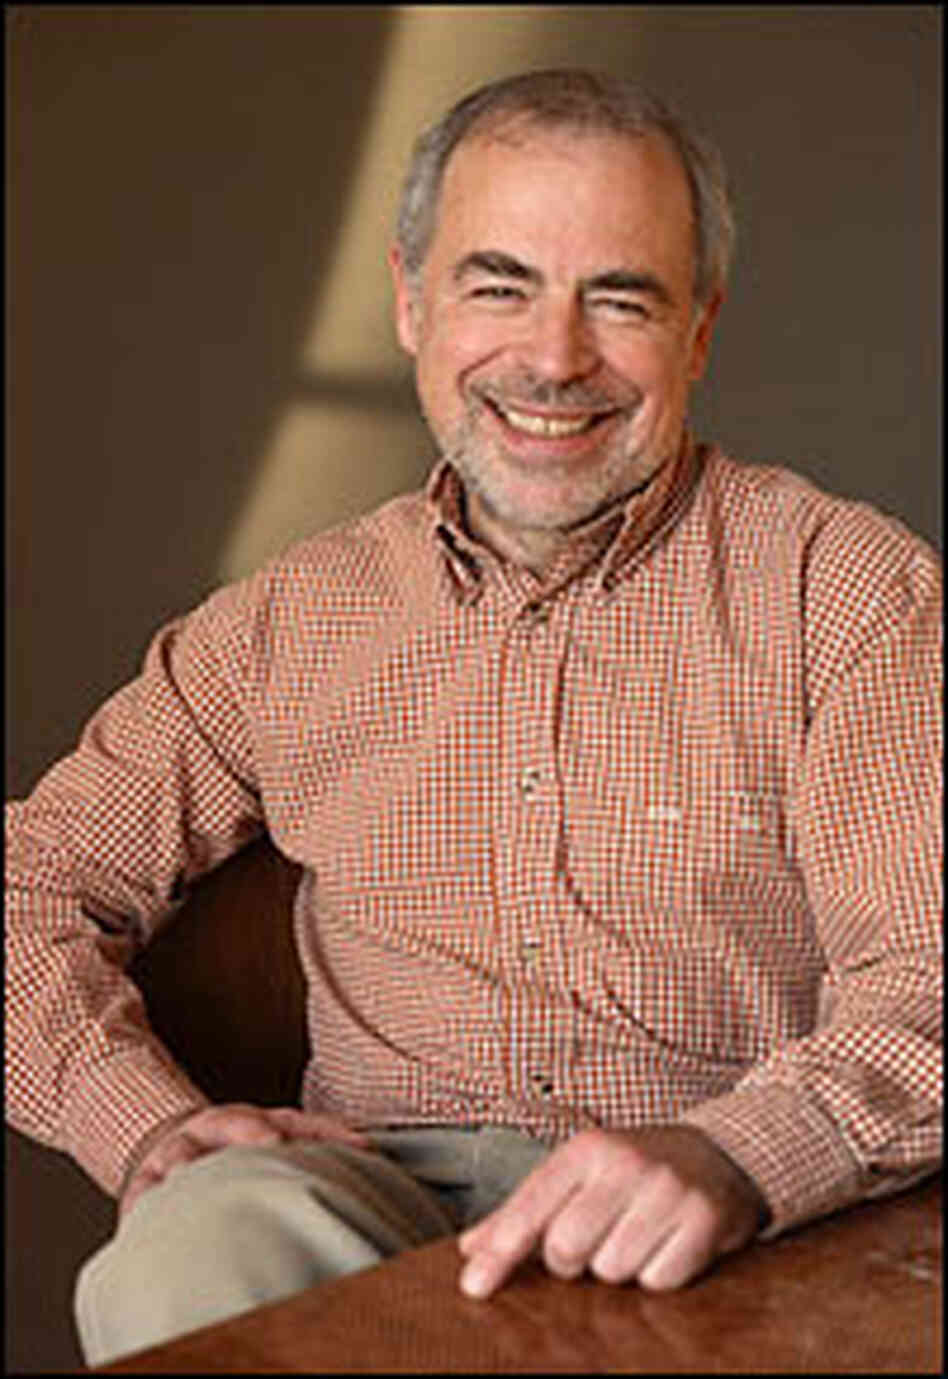 Author Richard Russo